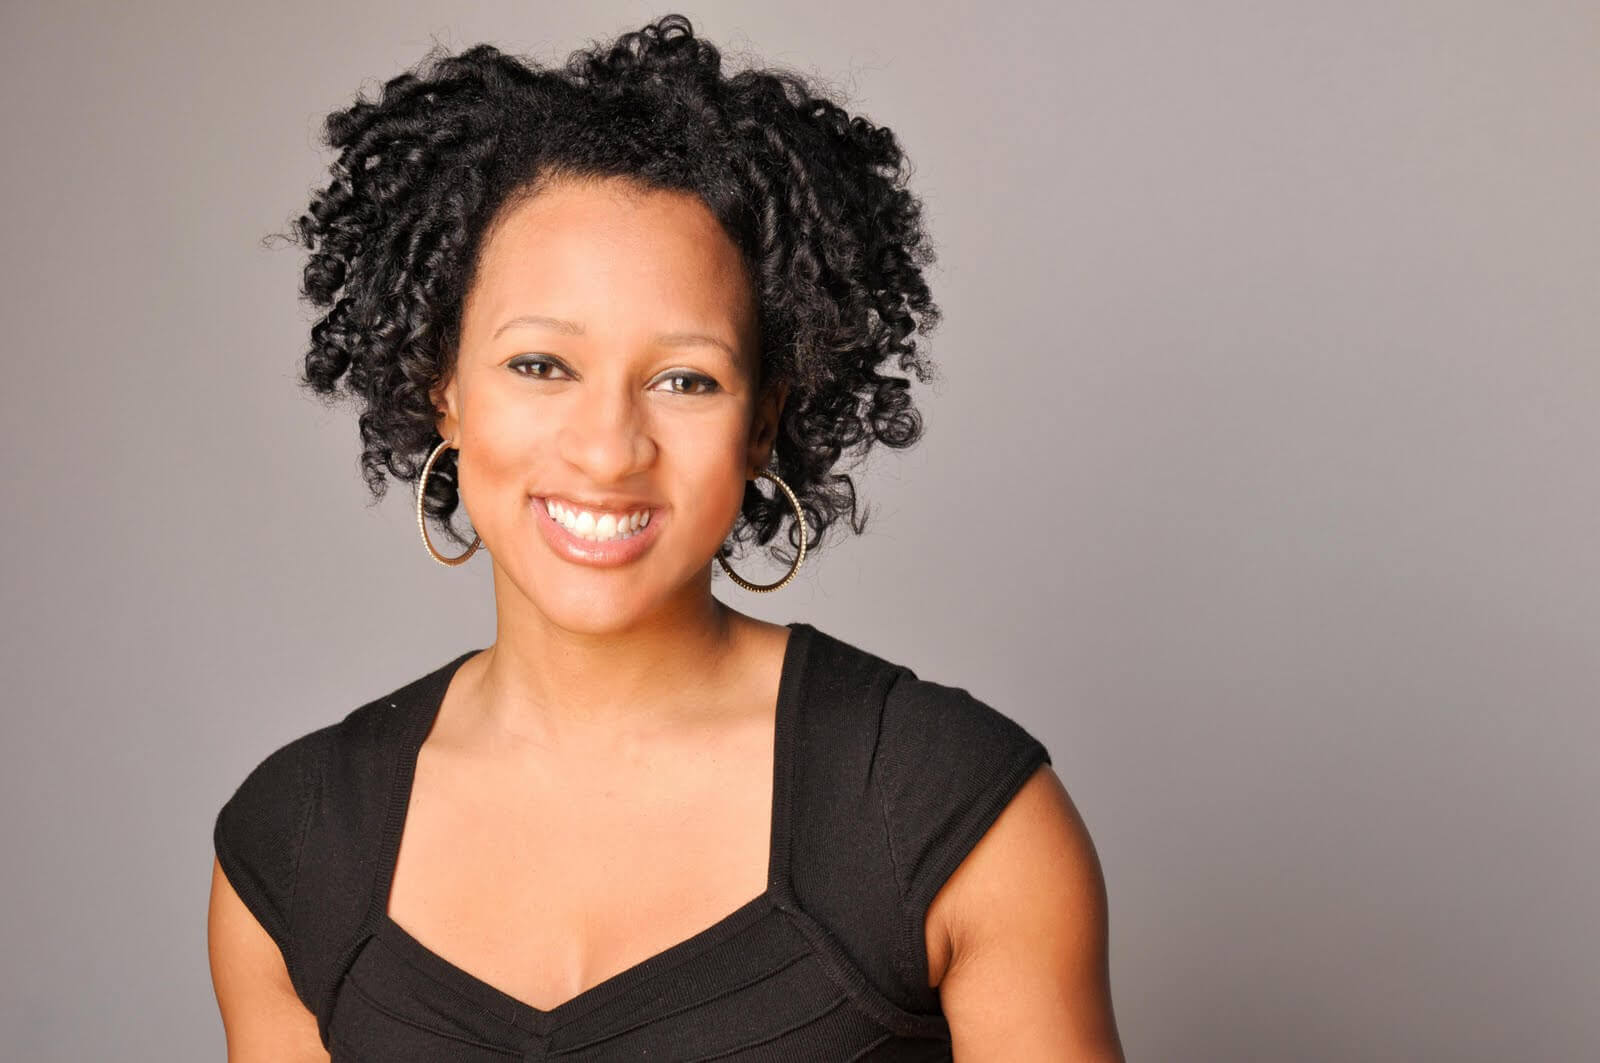 13 Cute Short Curly Hairstyles For Black Women Cute